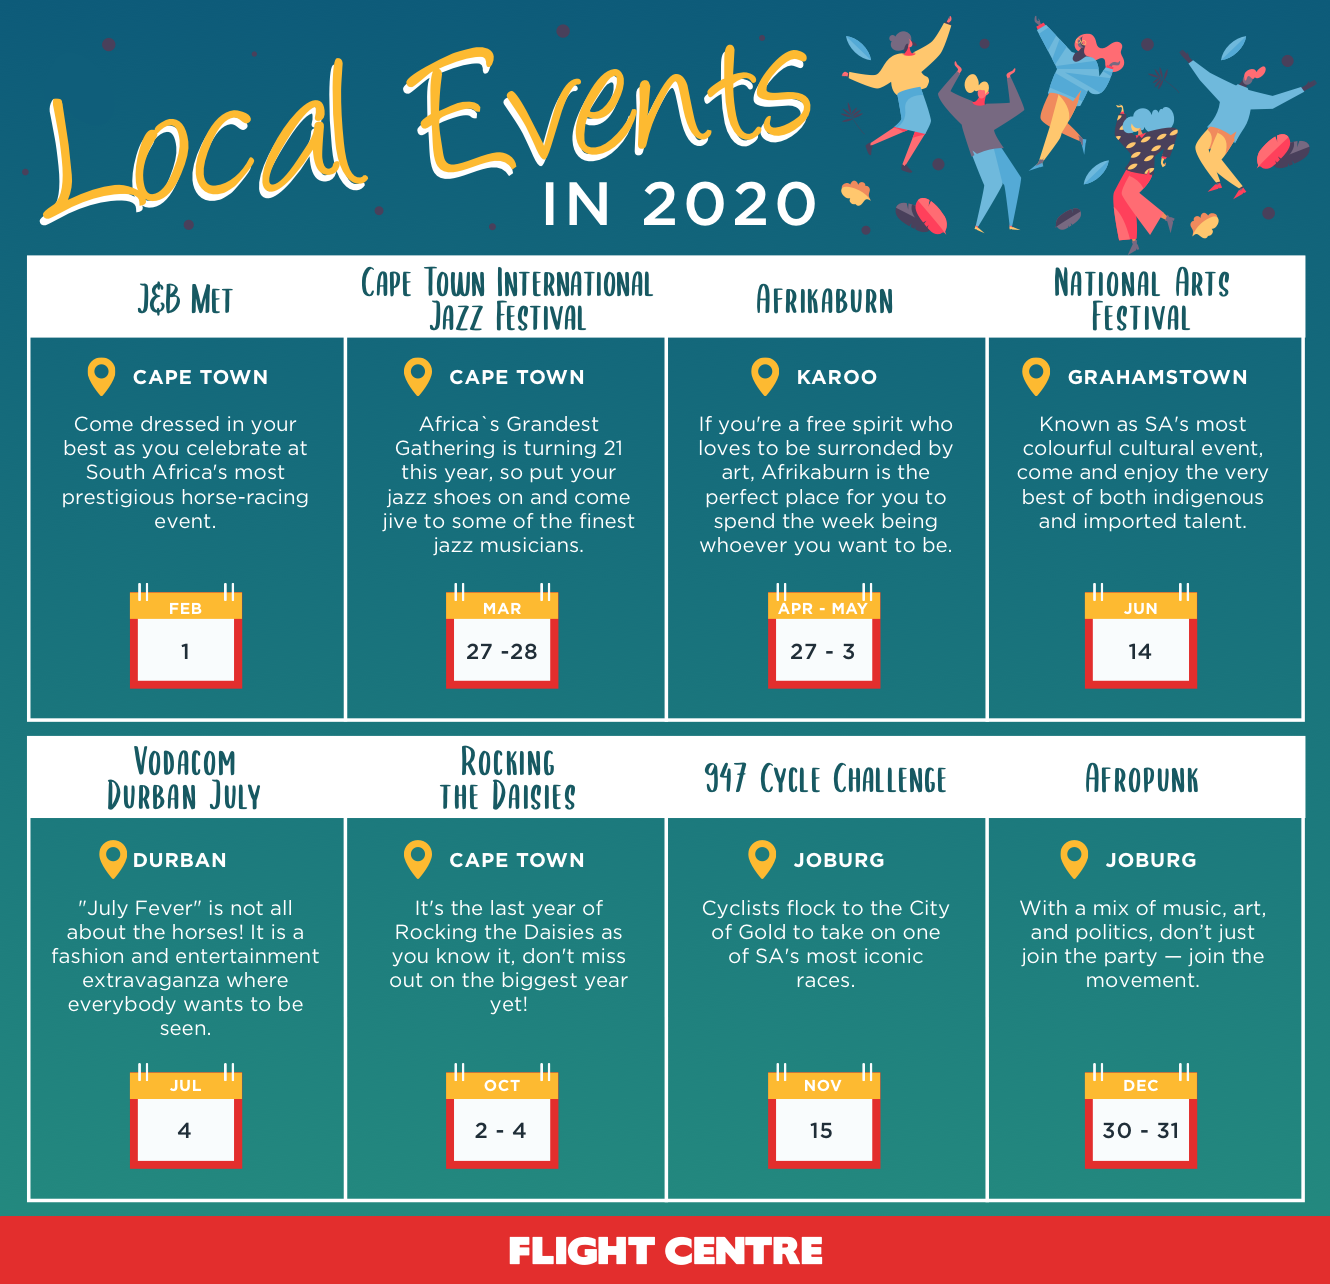 local-events-in-202